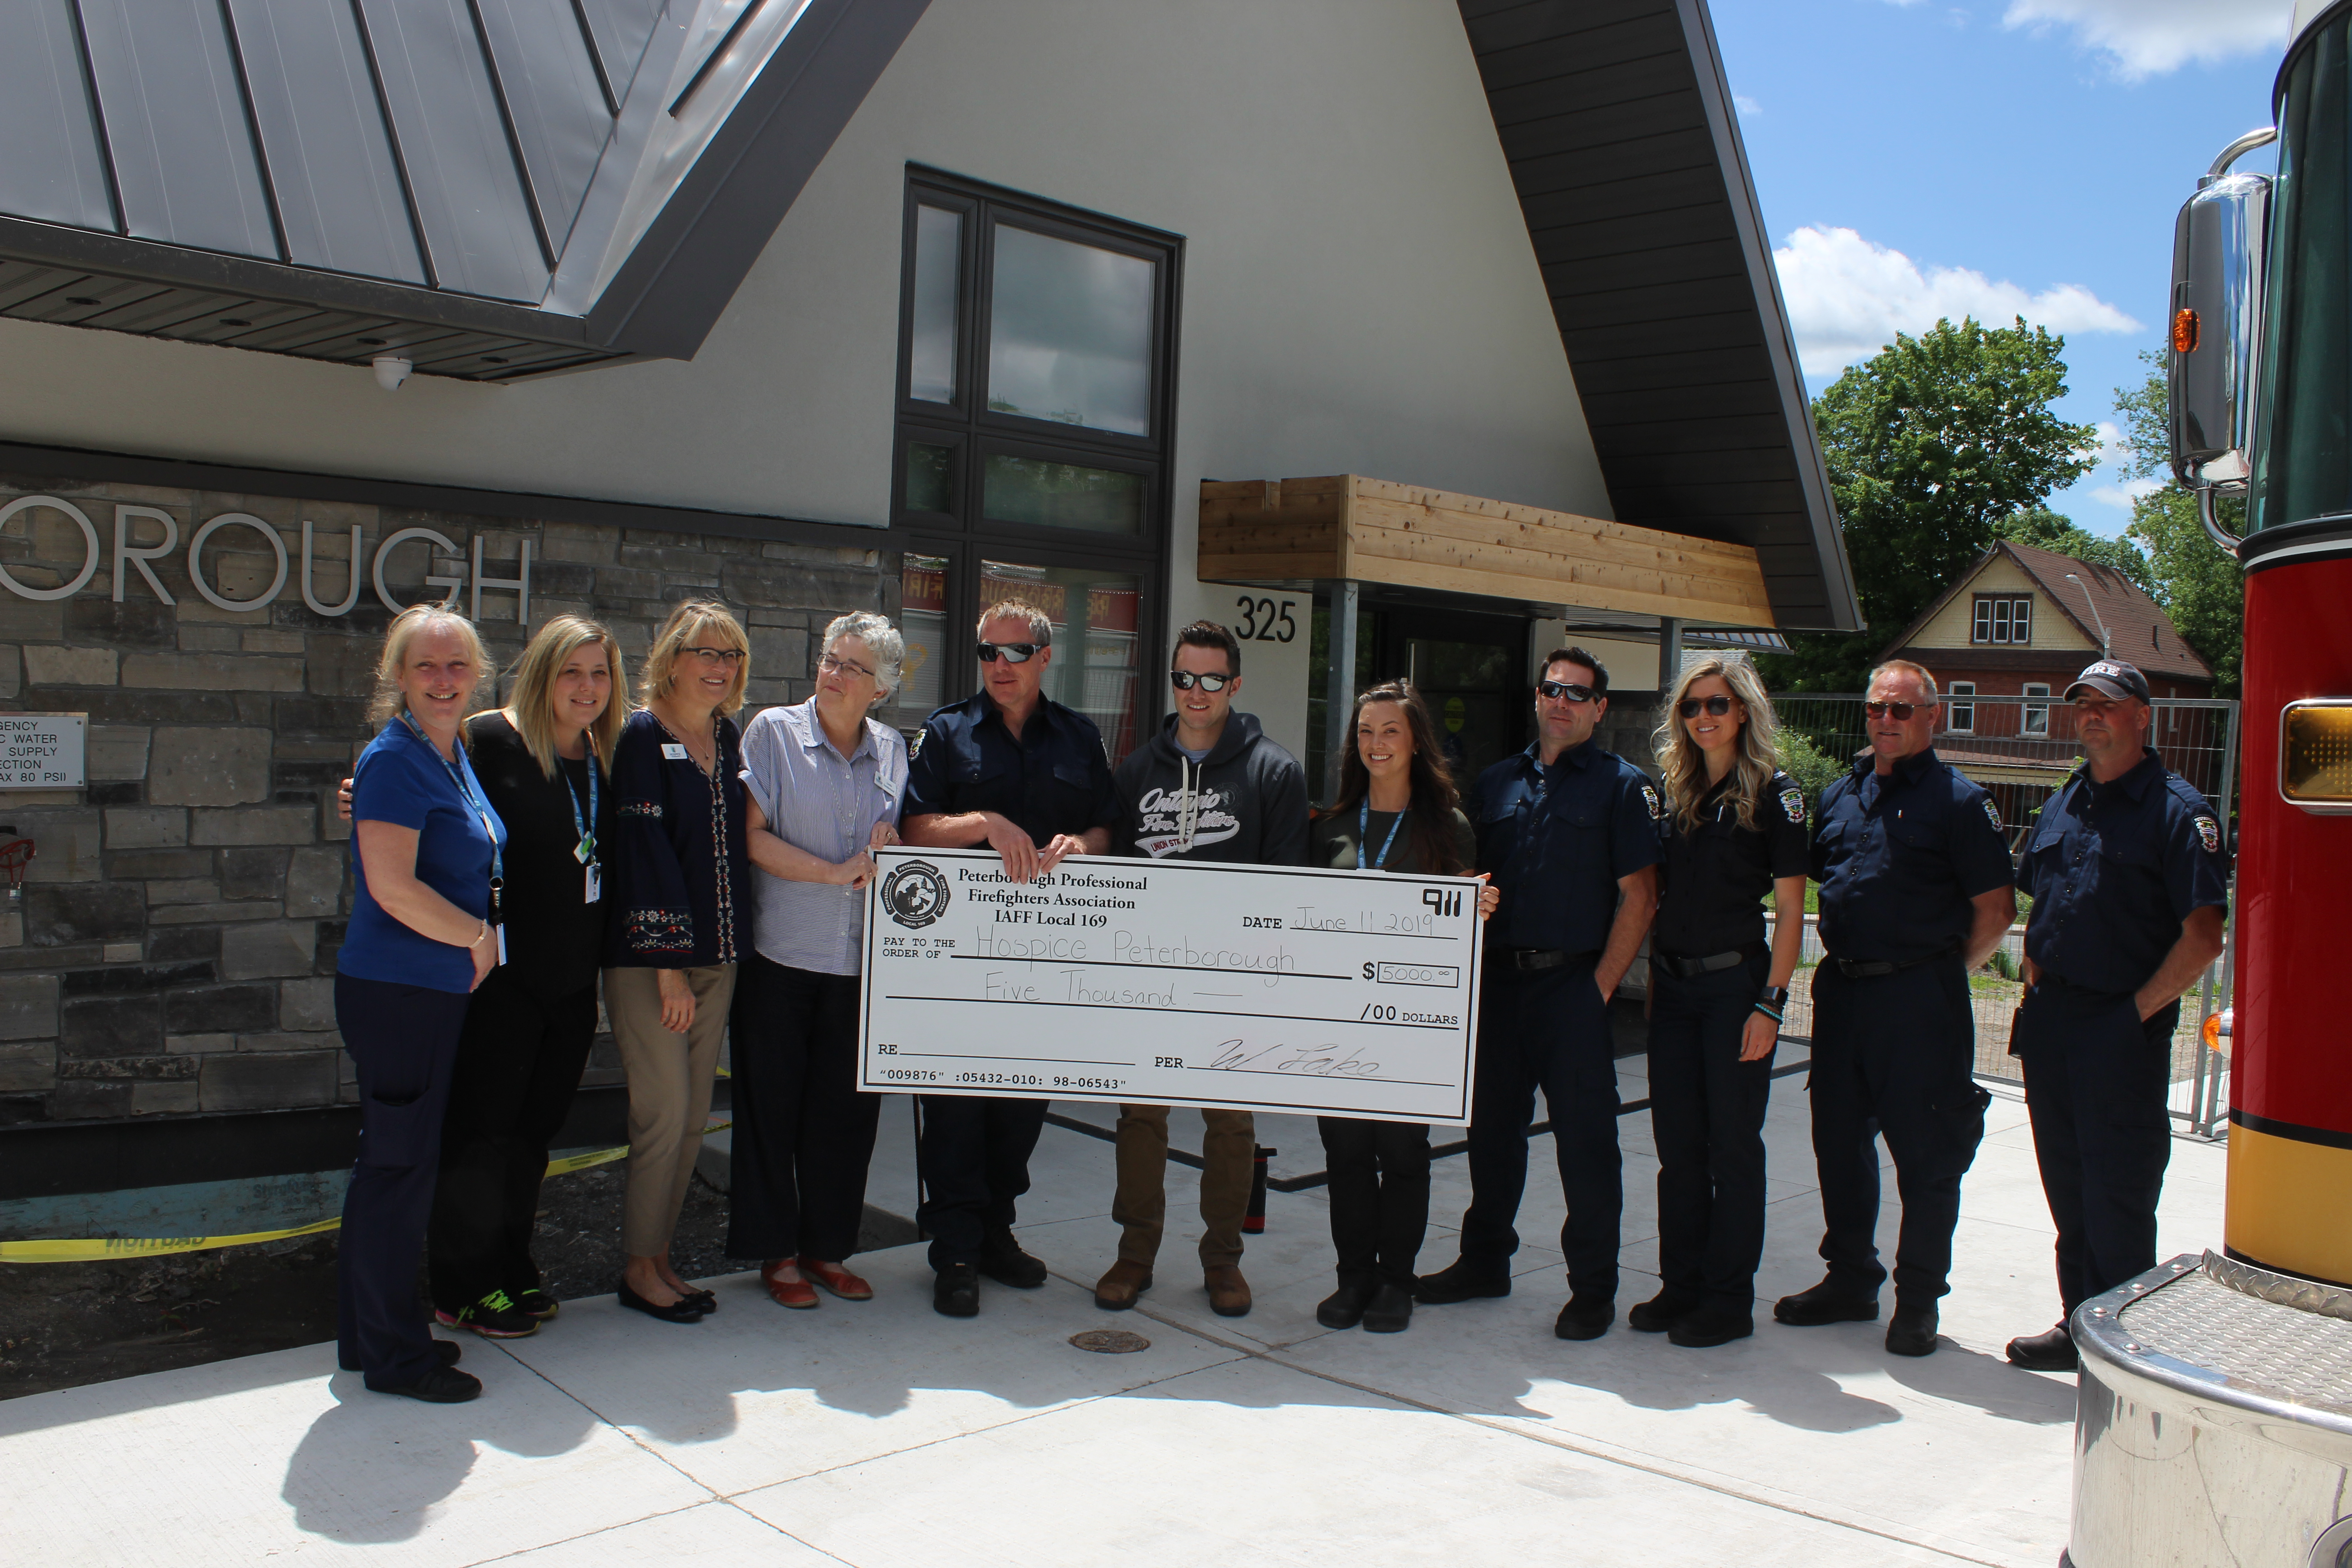 Photo of PPFA cheque presentation - Pictured (left to right): Jody Taylor, Sarah Youmans, Shelley Barrie, Linda Sunderland, Joe O'Brien, Mike O'Brien, Alley Heard, Jason Cooper, Amanda Nichols, Herb Koning, Ian Robertson.